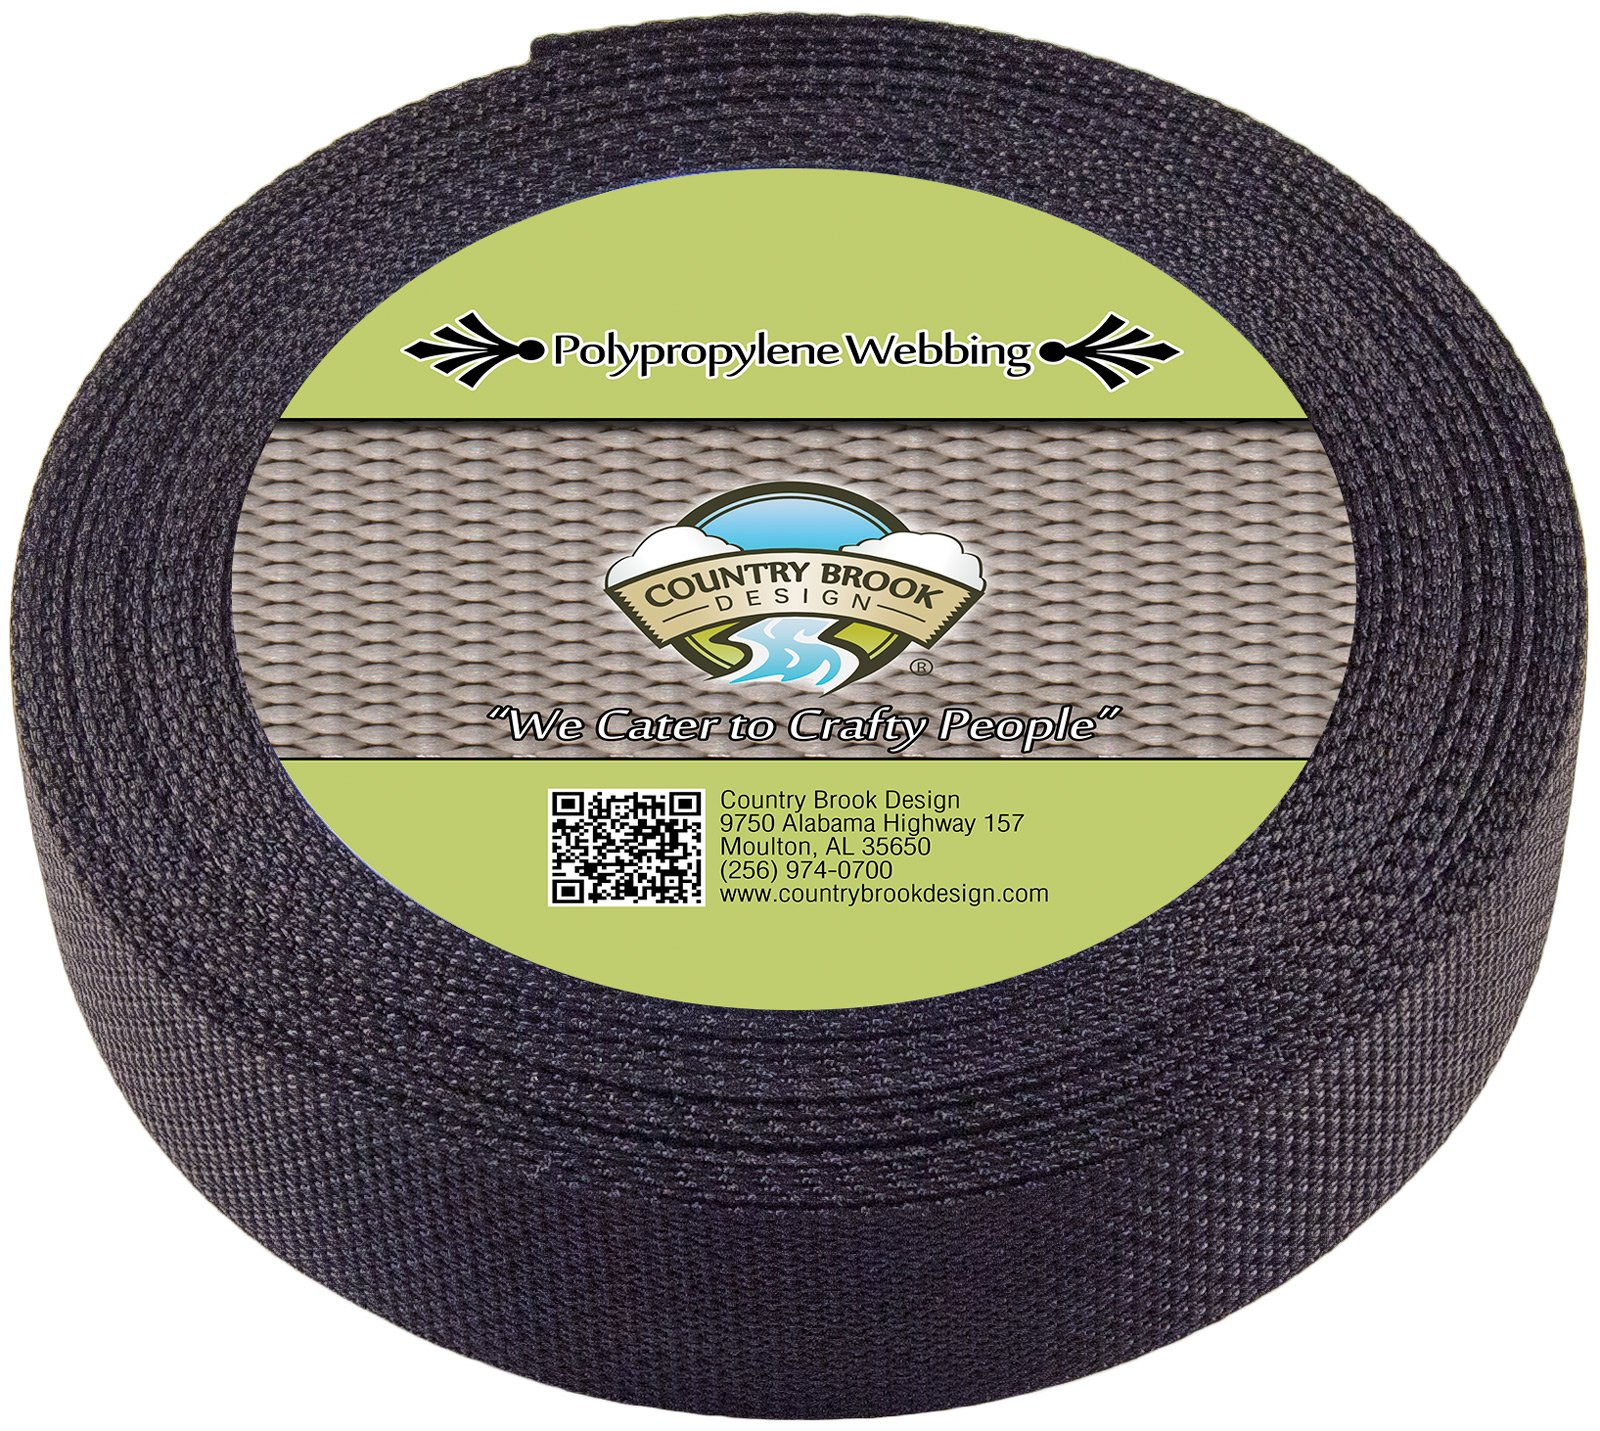 Country Brook Design 1 1/2 Inch Black Polypro Webbing, 700 Yards by Country Brook Design